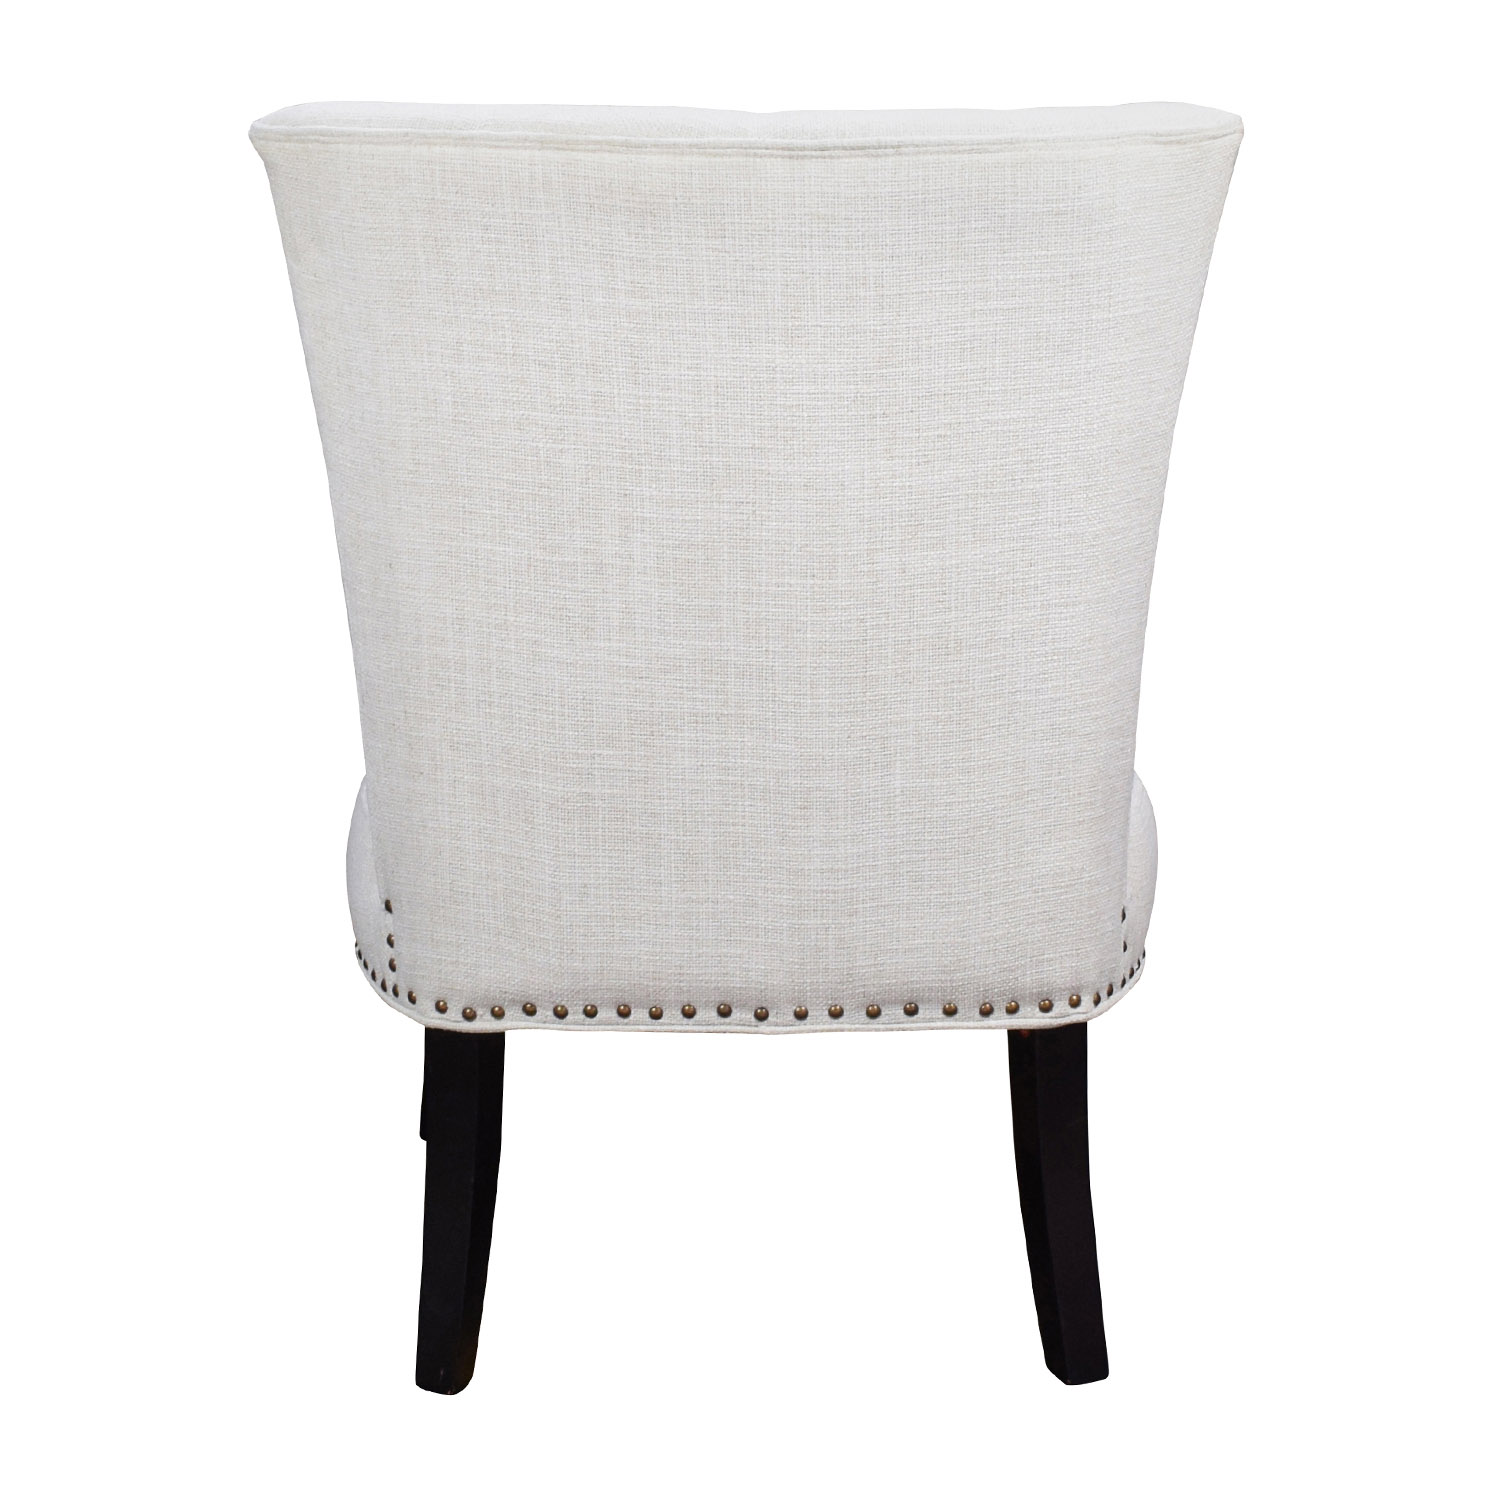 white tufted chairs sofa chair covers target 66 off unkown accent